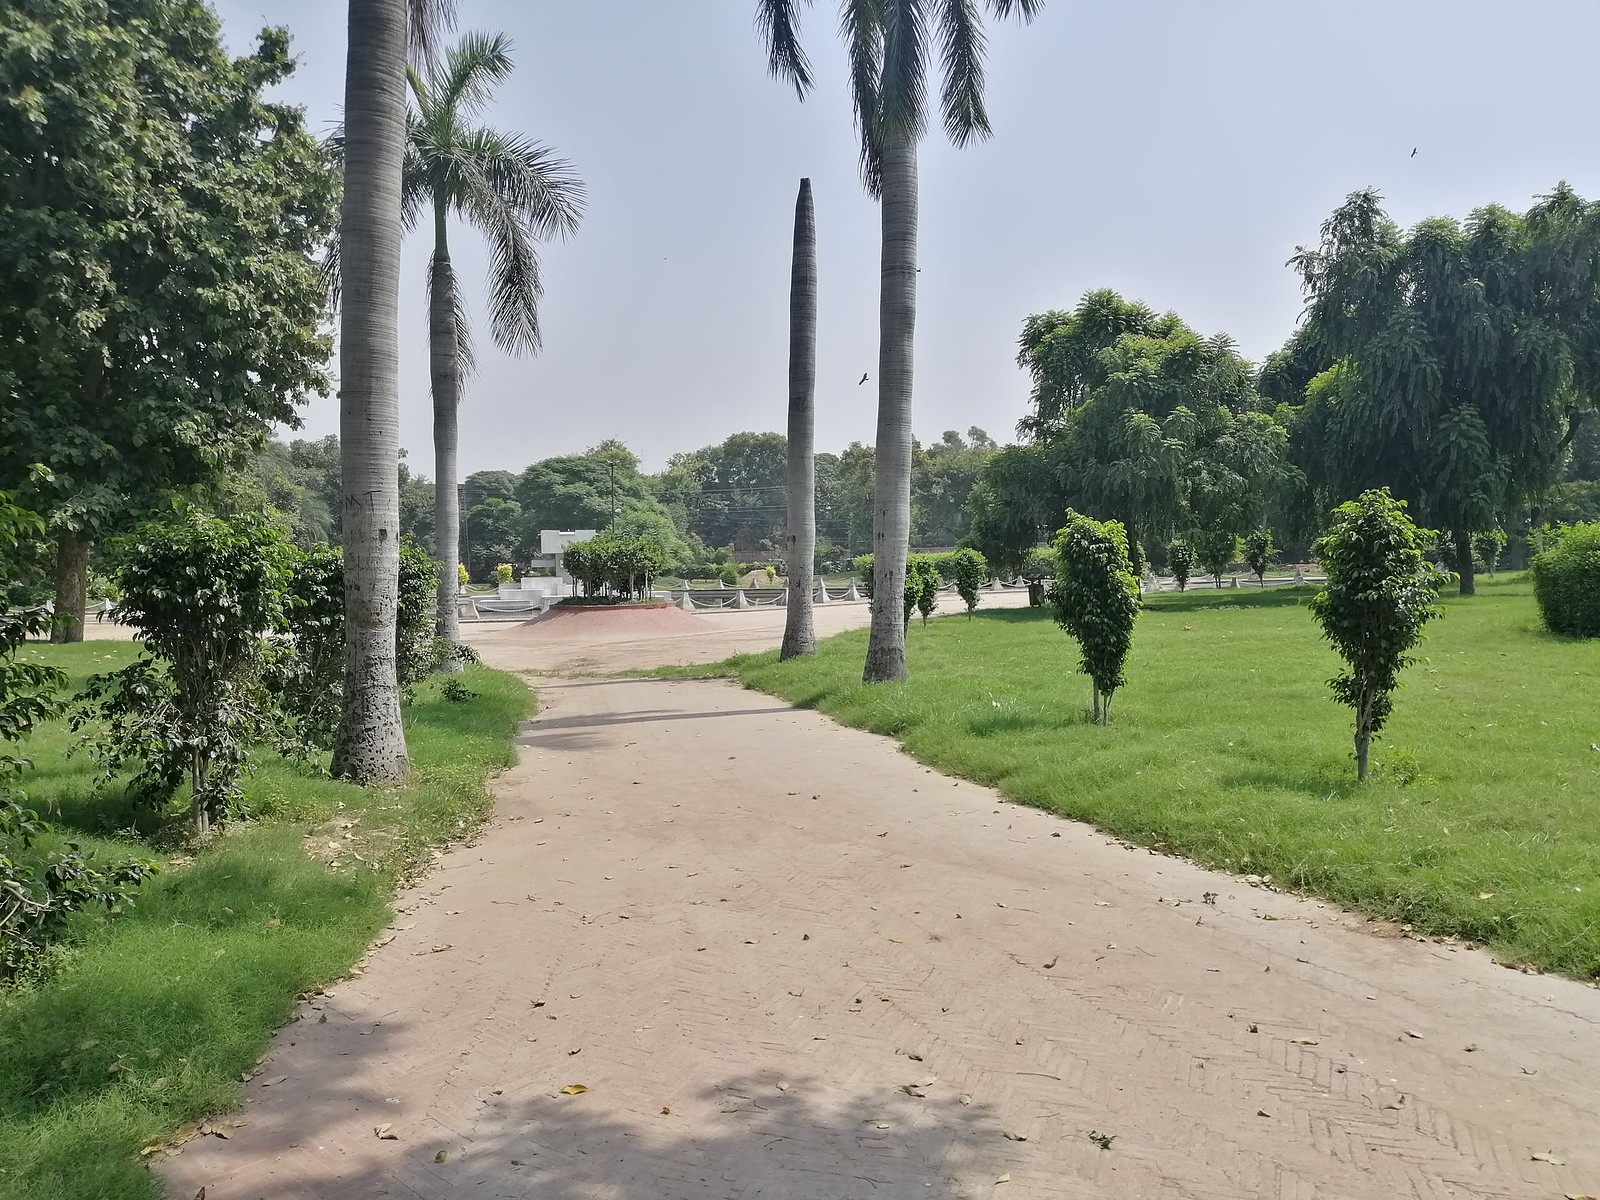 Park Picture withPark Picture with HDR Mode on Huawei Nova 3iz HDR Mode on Huawei Nova 3i